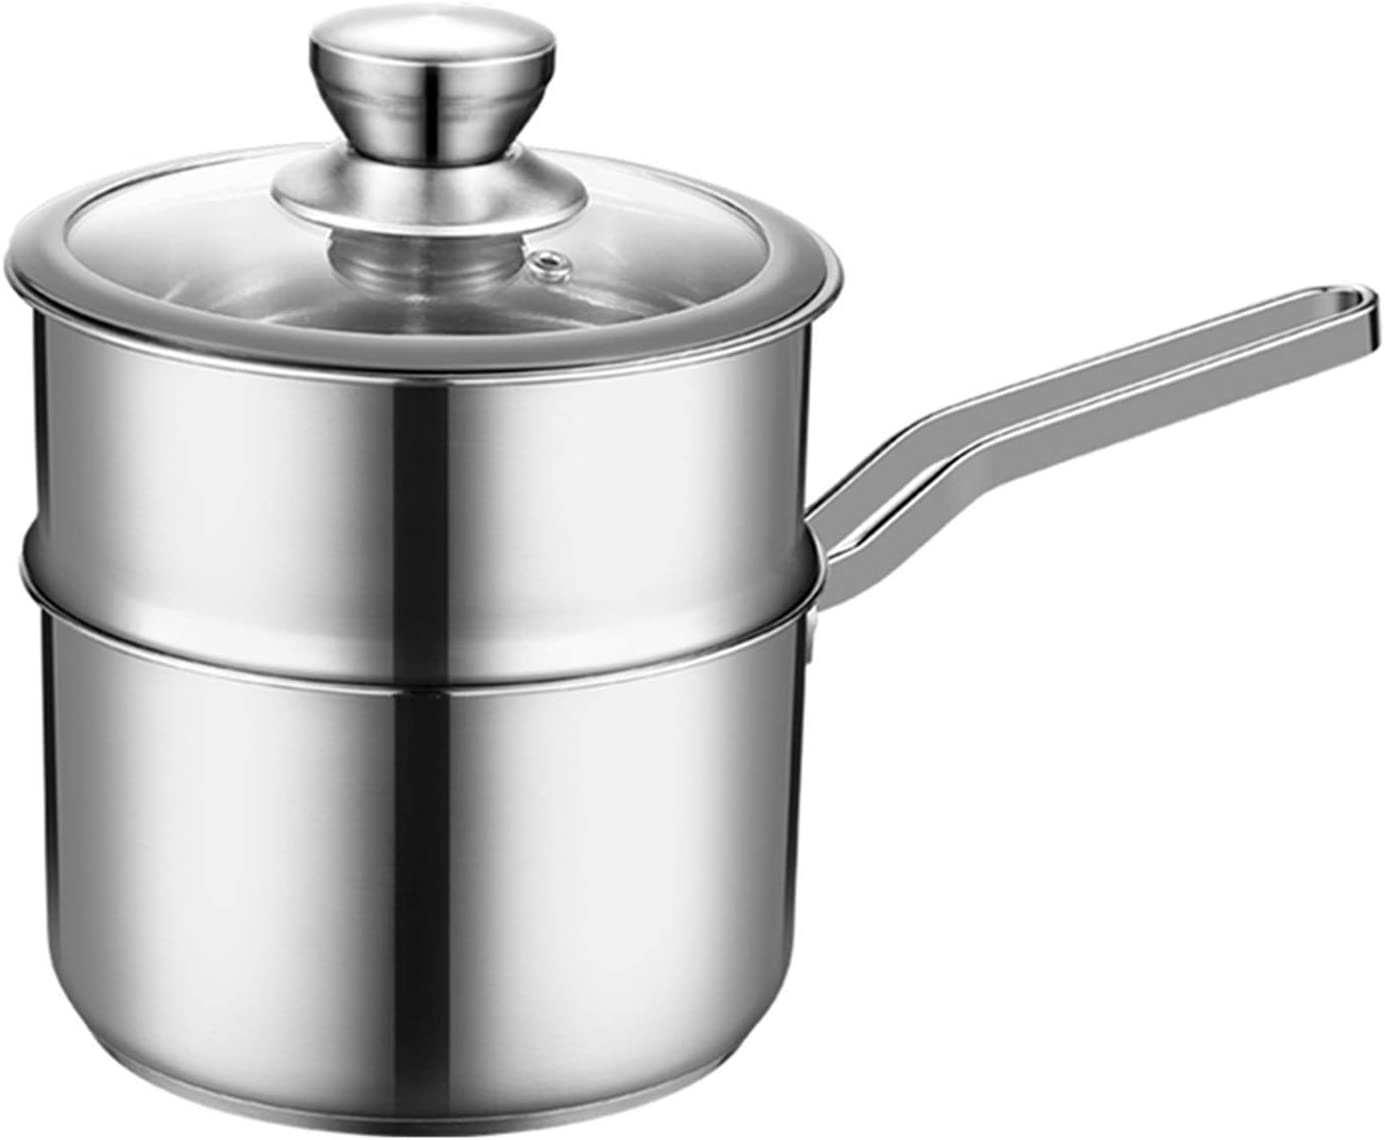 Stainless Steel Easy-to-use Food Steamer Pan Lid Milk Superior With Bottom Thick